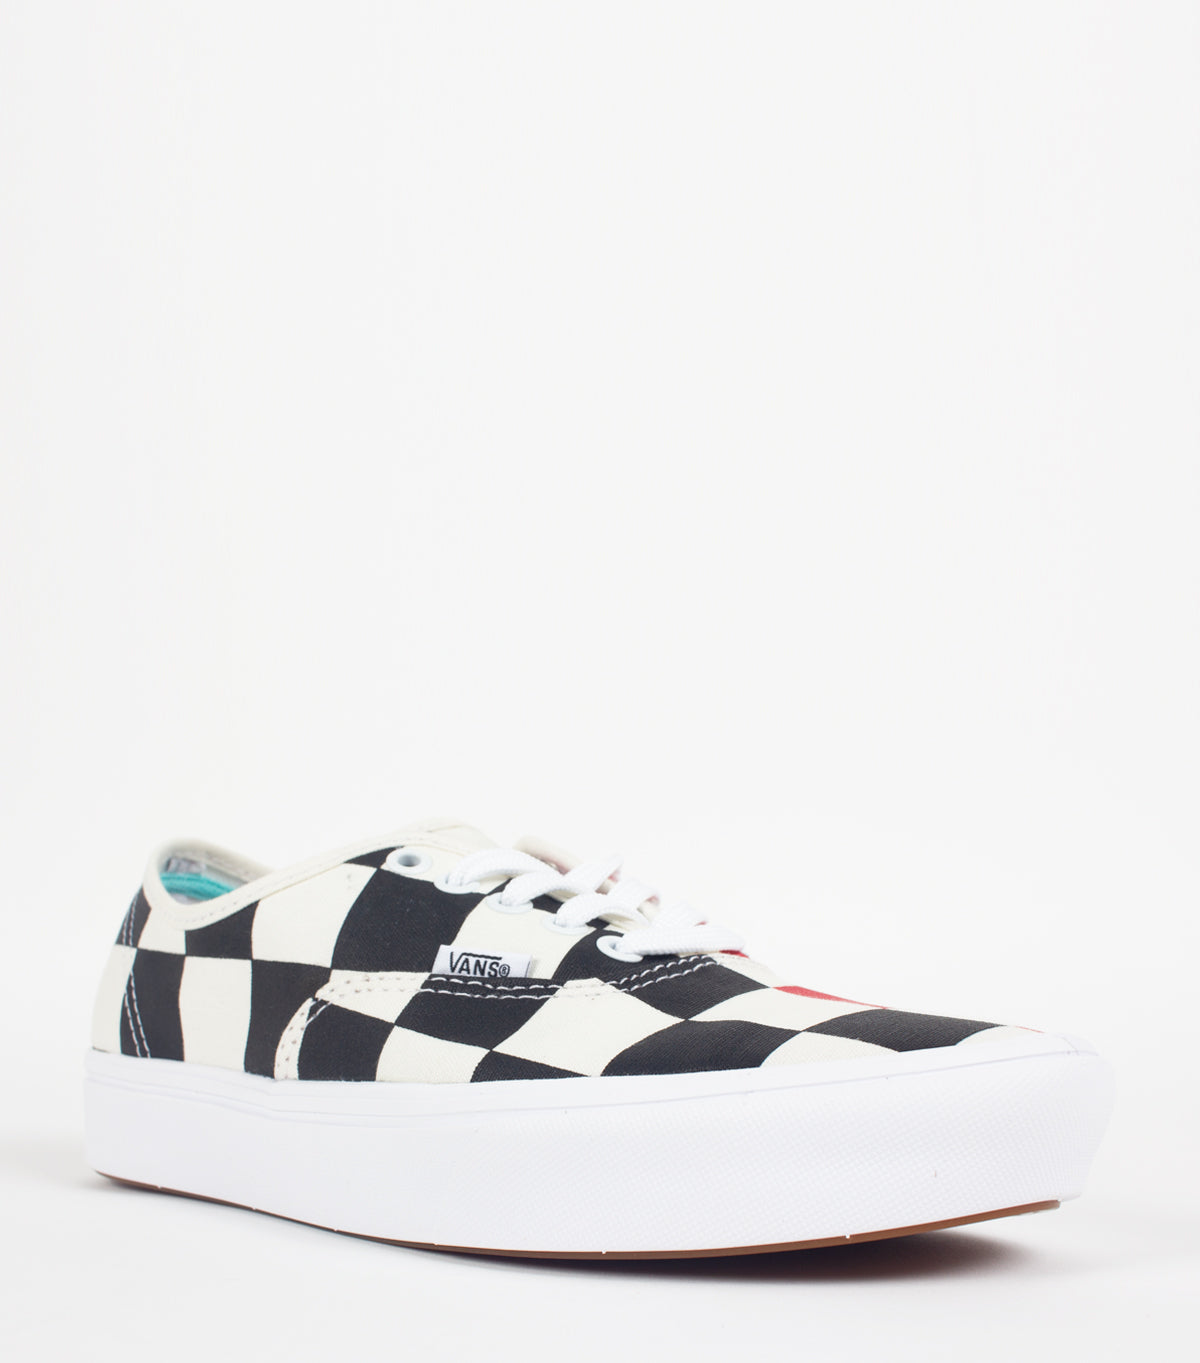 VANS | VANS COMFYCUSH HALF BIG CHECKER BLACK RED AUTHENTIC | SOMEWHERE®